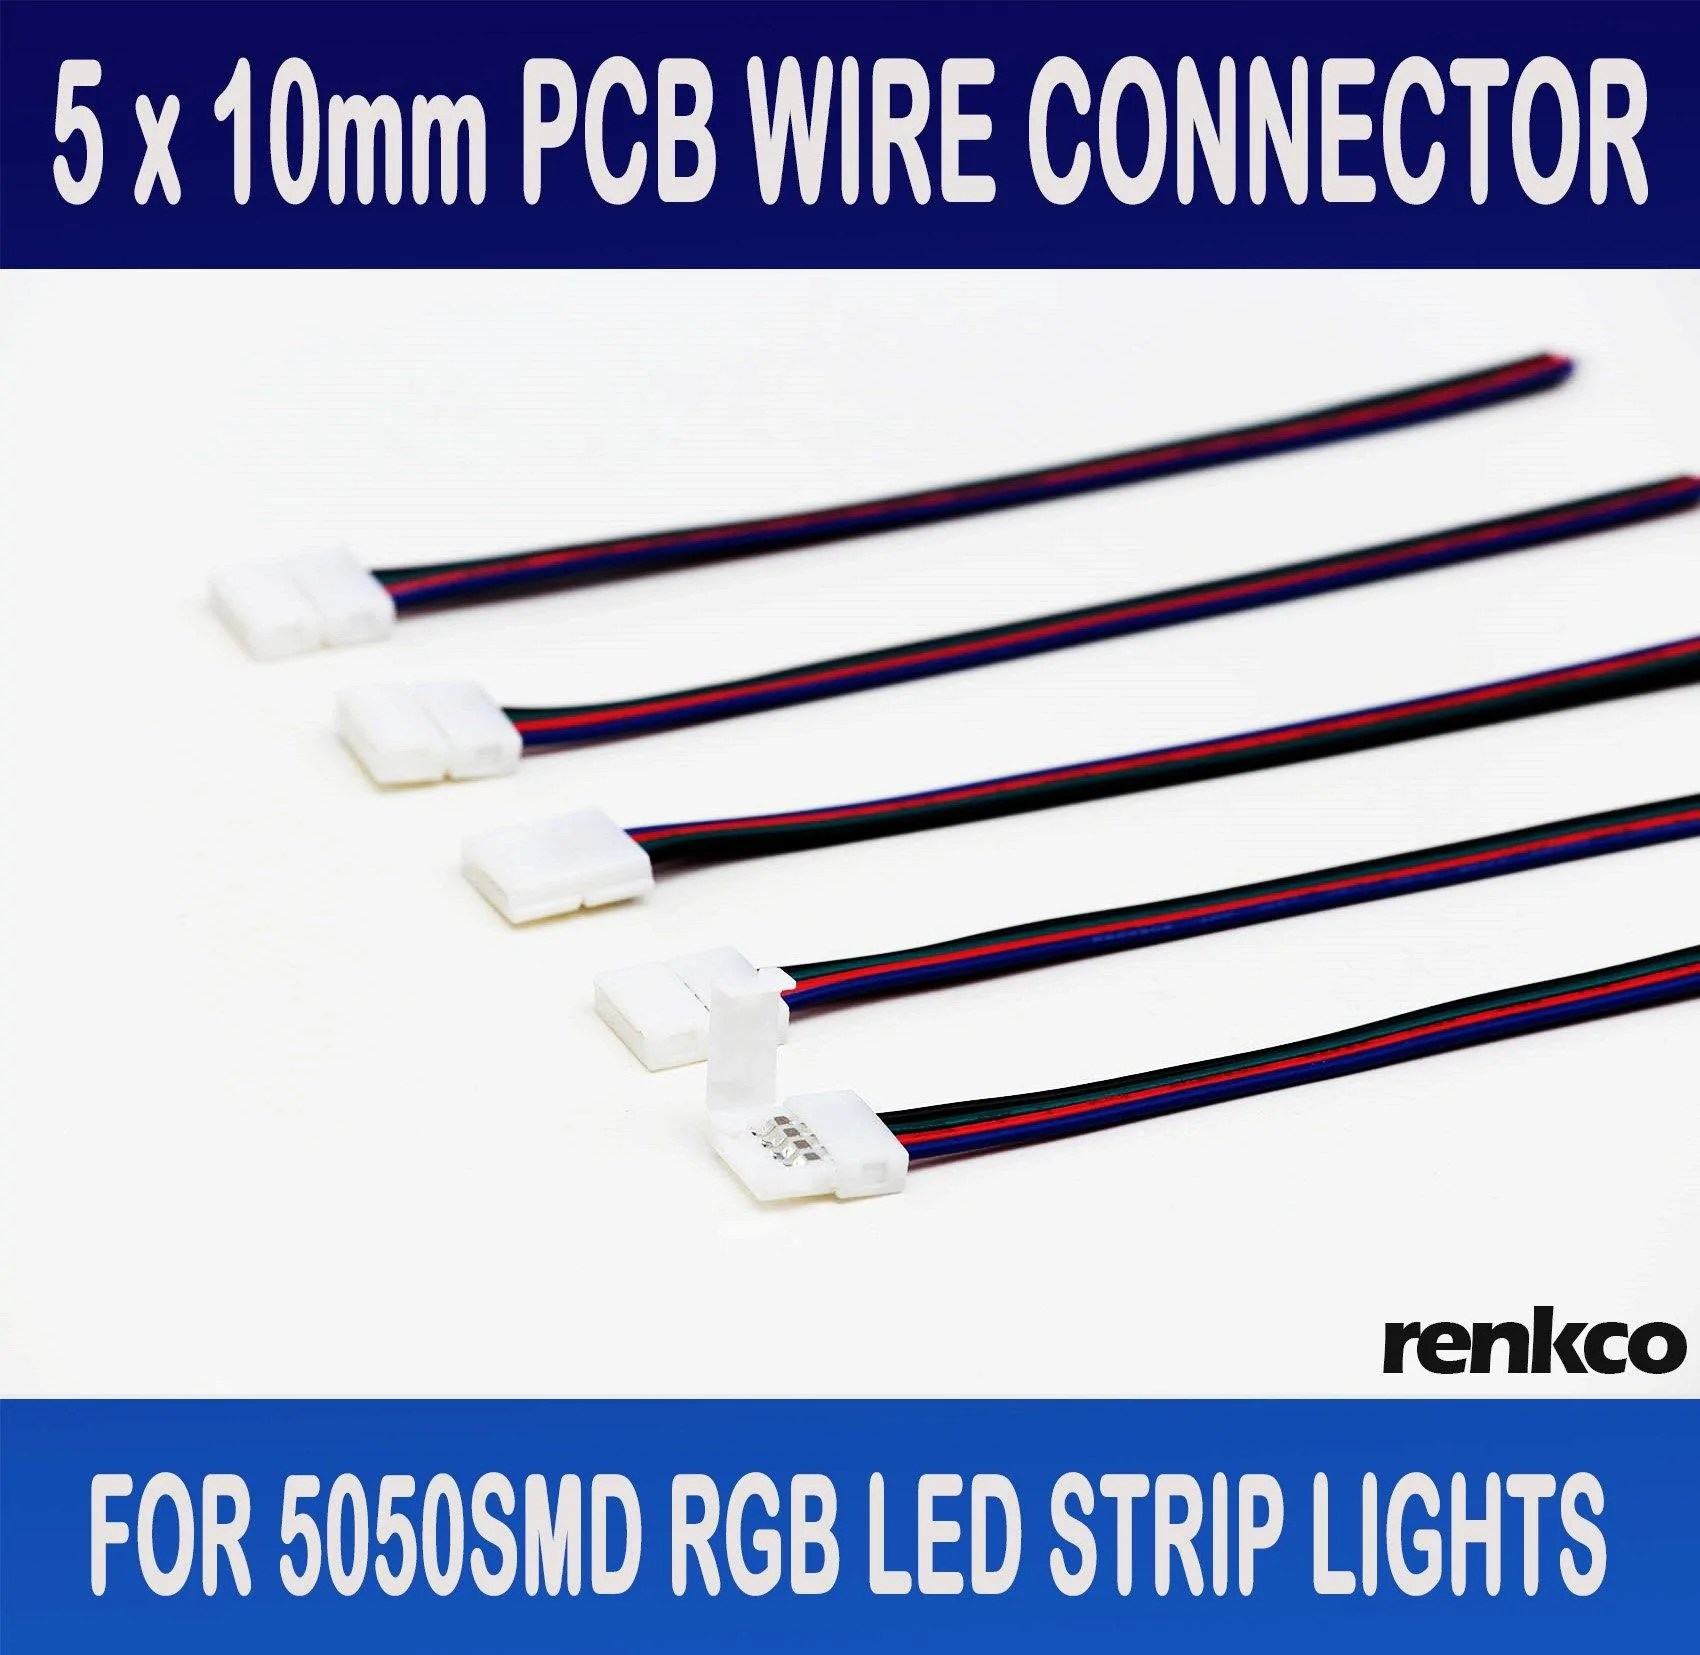 medium resolution of renkco 5pcs 10mm pcb board with wire connector for 5050 rgb led strip lights leds